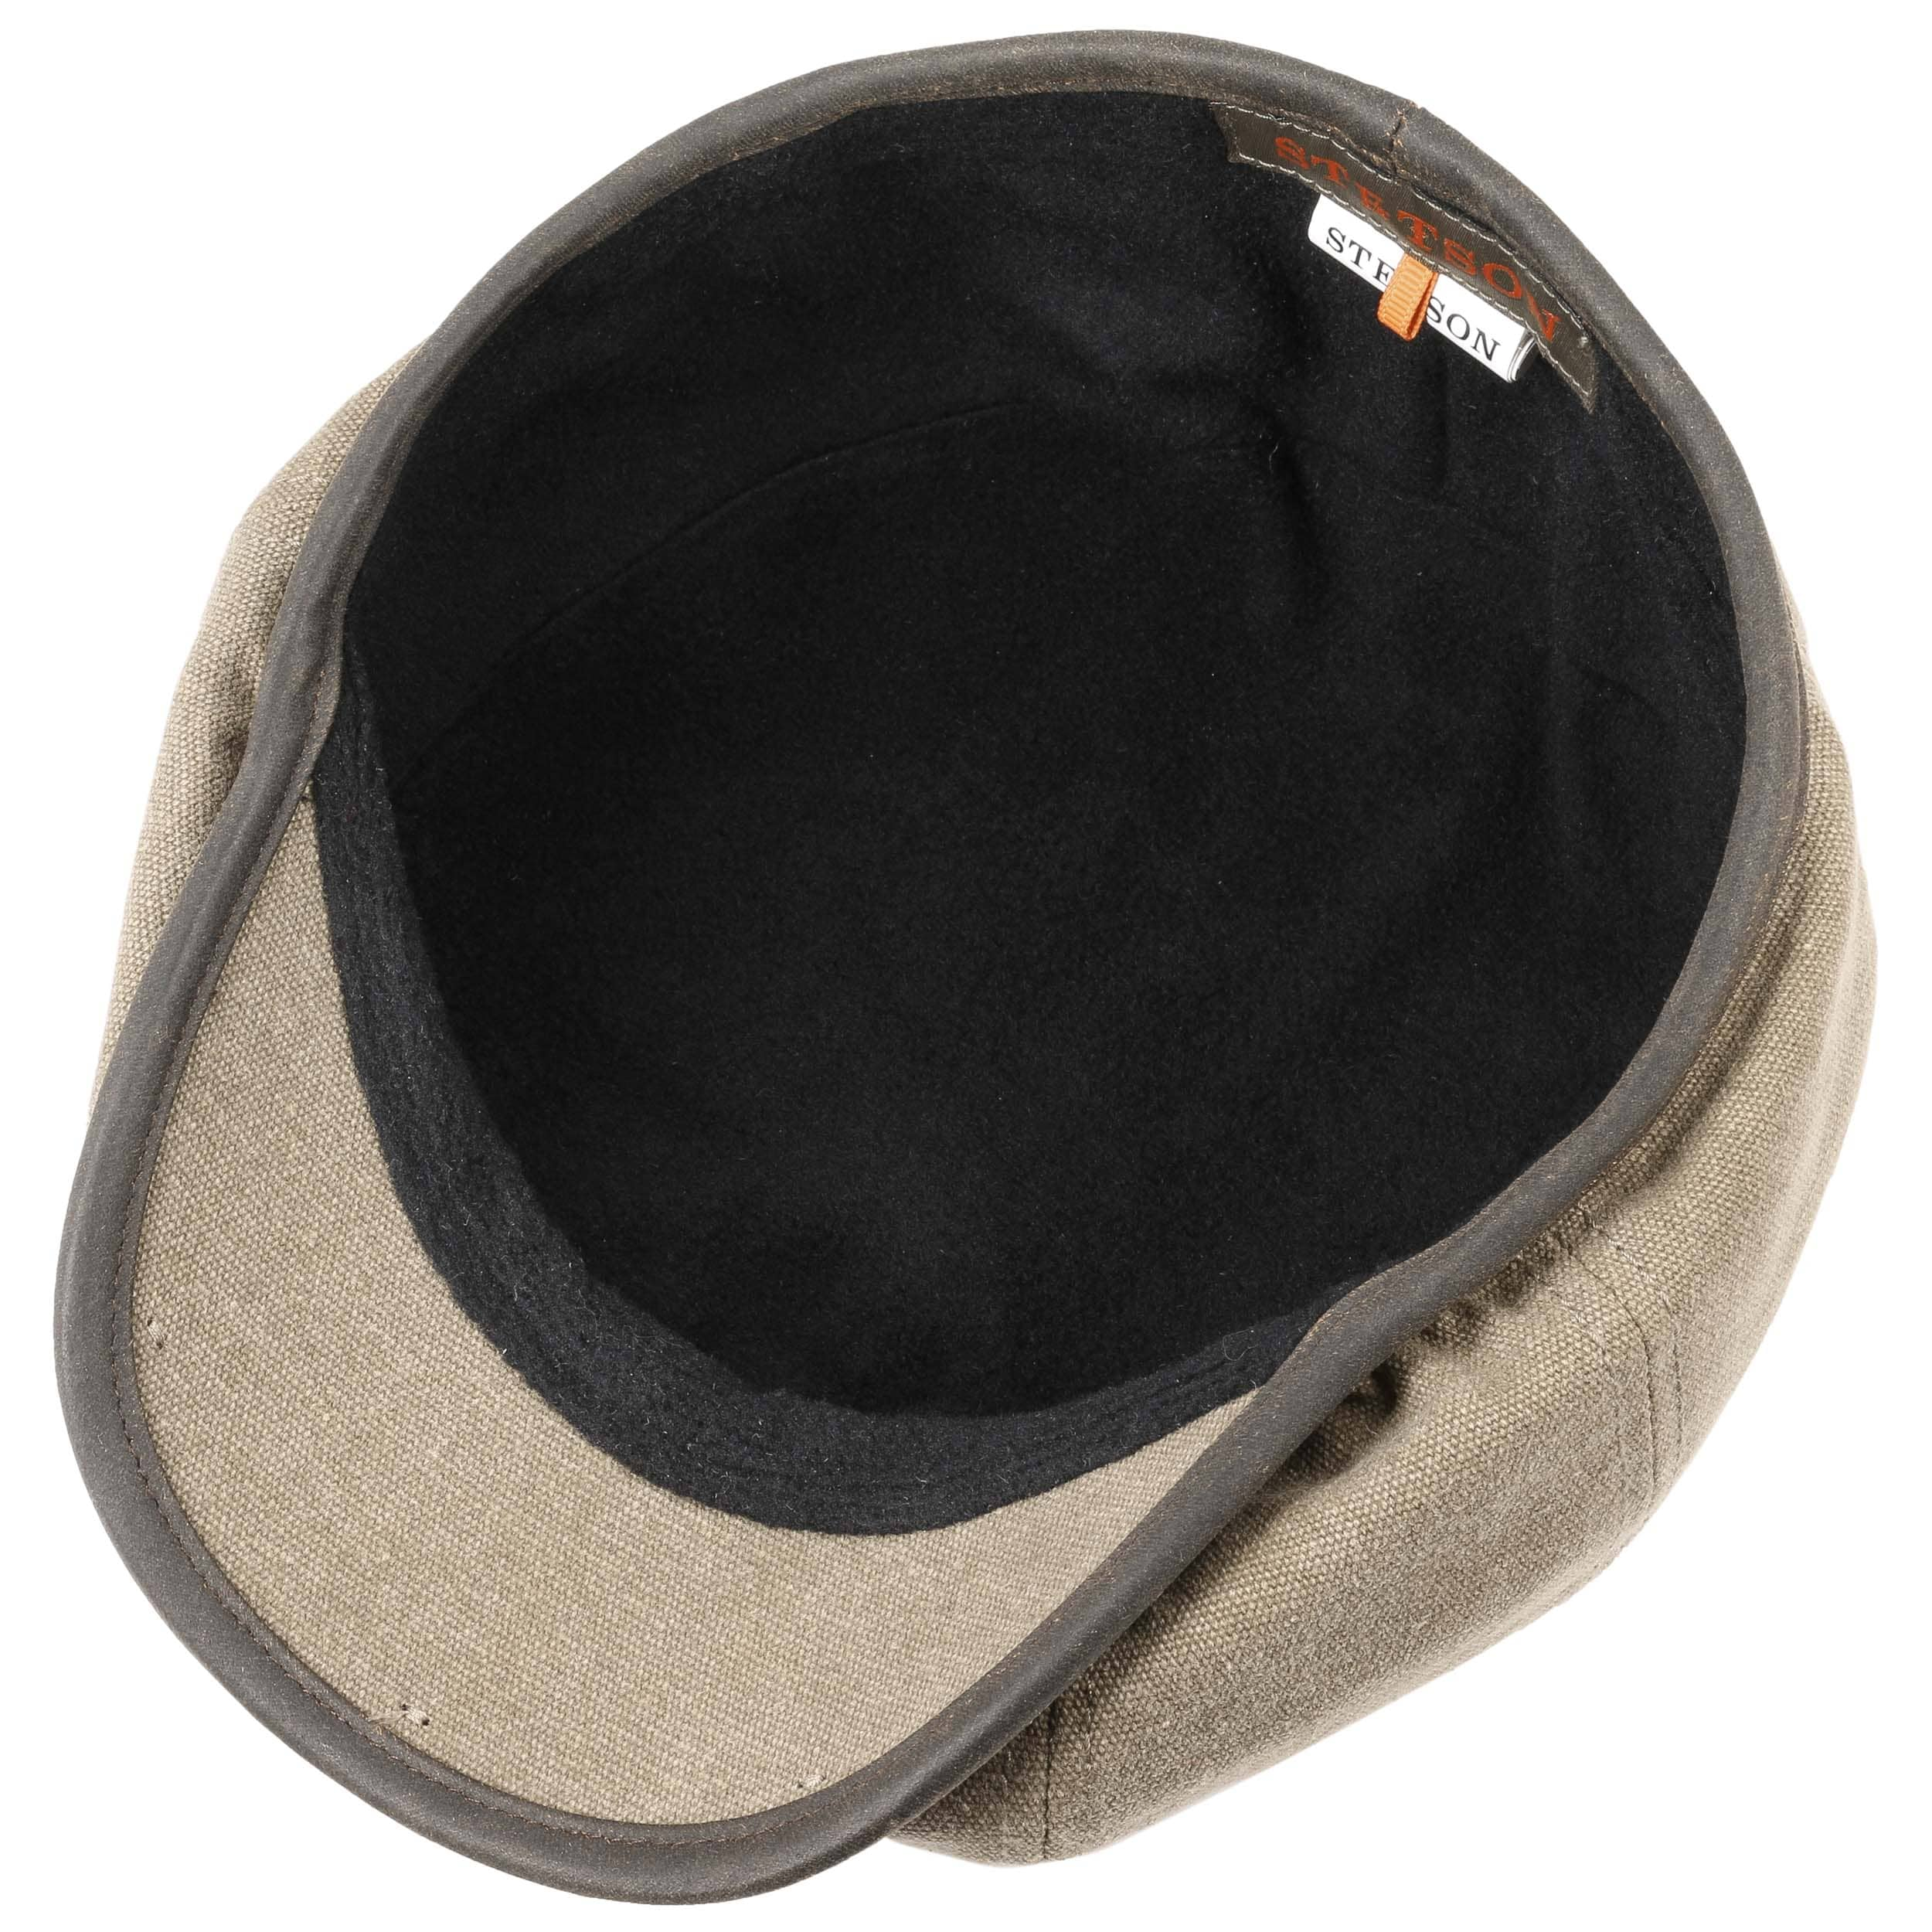 ... Gorra Hatteras Canvas Piping by Stetson - verde oliva claro 2 ... 24f56682d4a